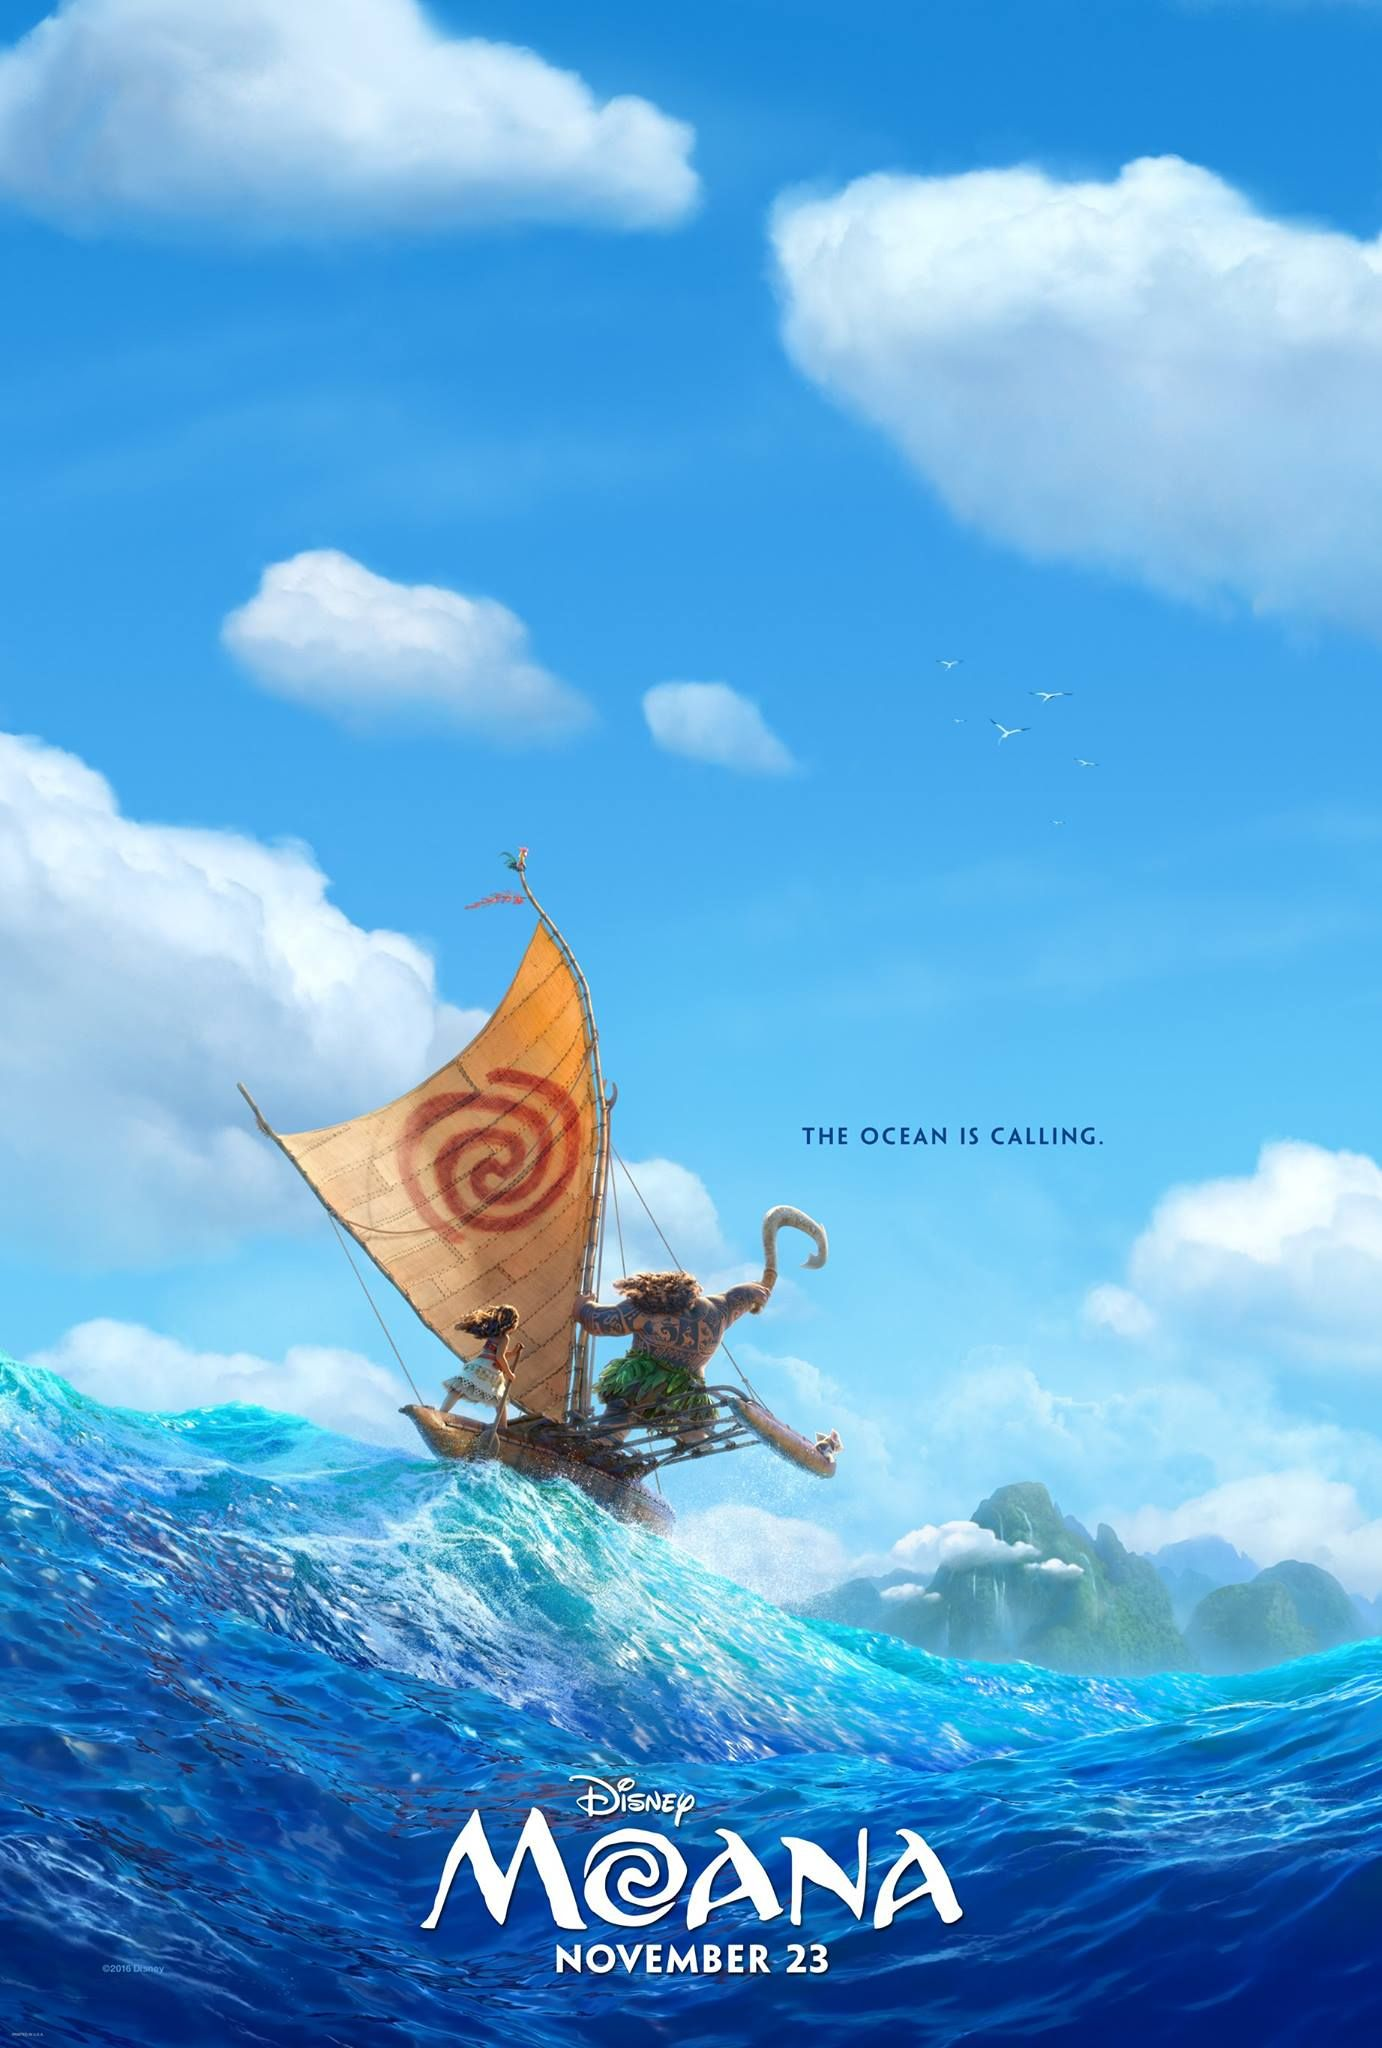 Teaser Trailer For Disney's 'Moana' Released Online! | Disney ...